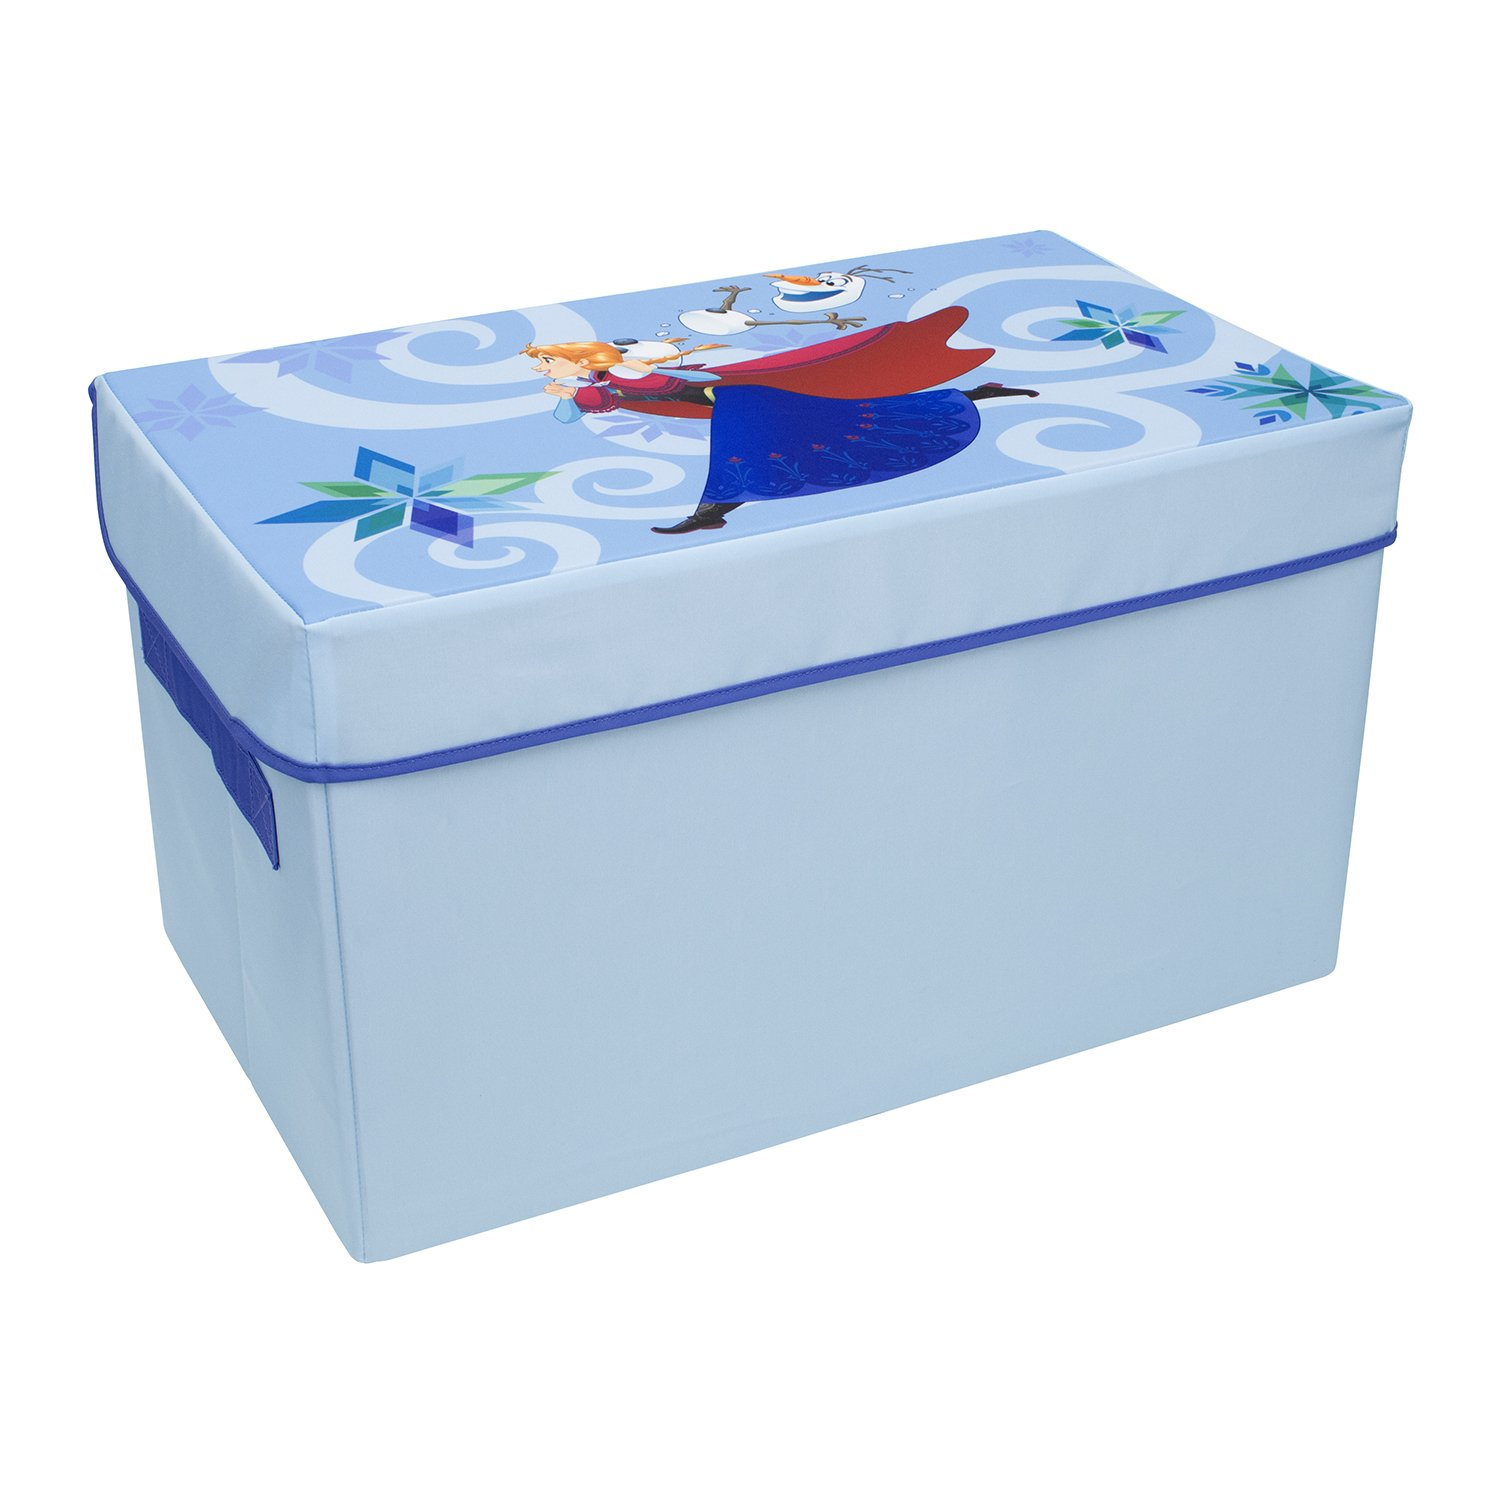 Frozen Collapsible Kids Toy Storage Chest by Disney - Flip-Top Toy Organizer Bin for Closets, Kids Bedroom, Boys & Girls Toys - Foldable Toy Basket Organizer with Strong Handles & Design